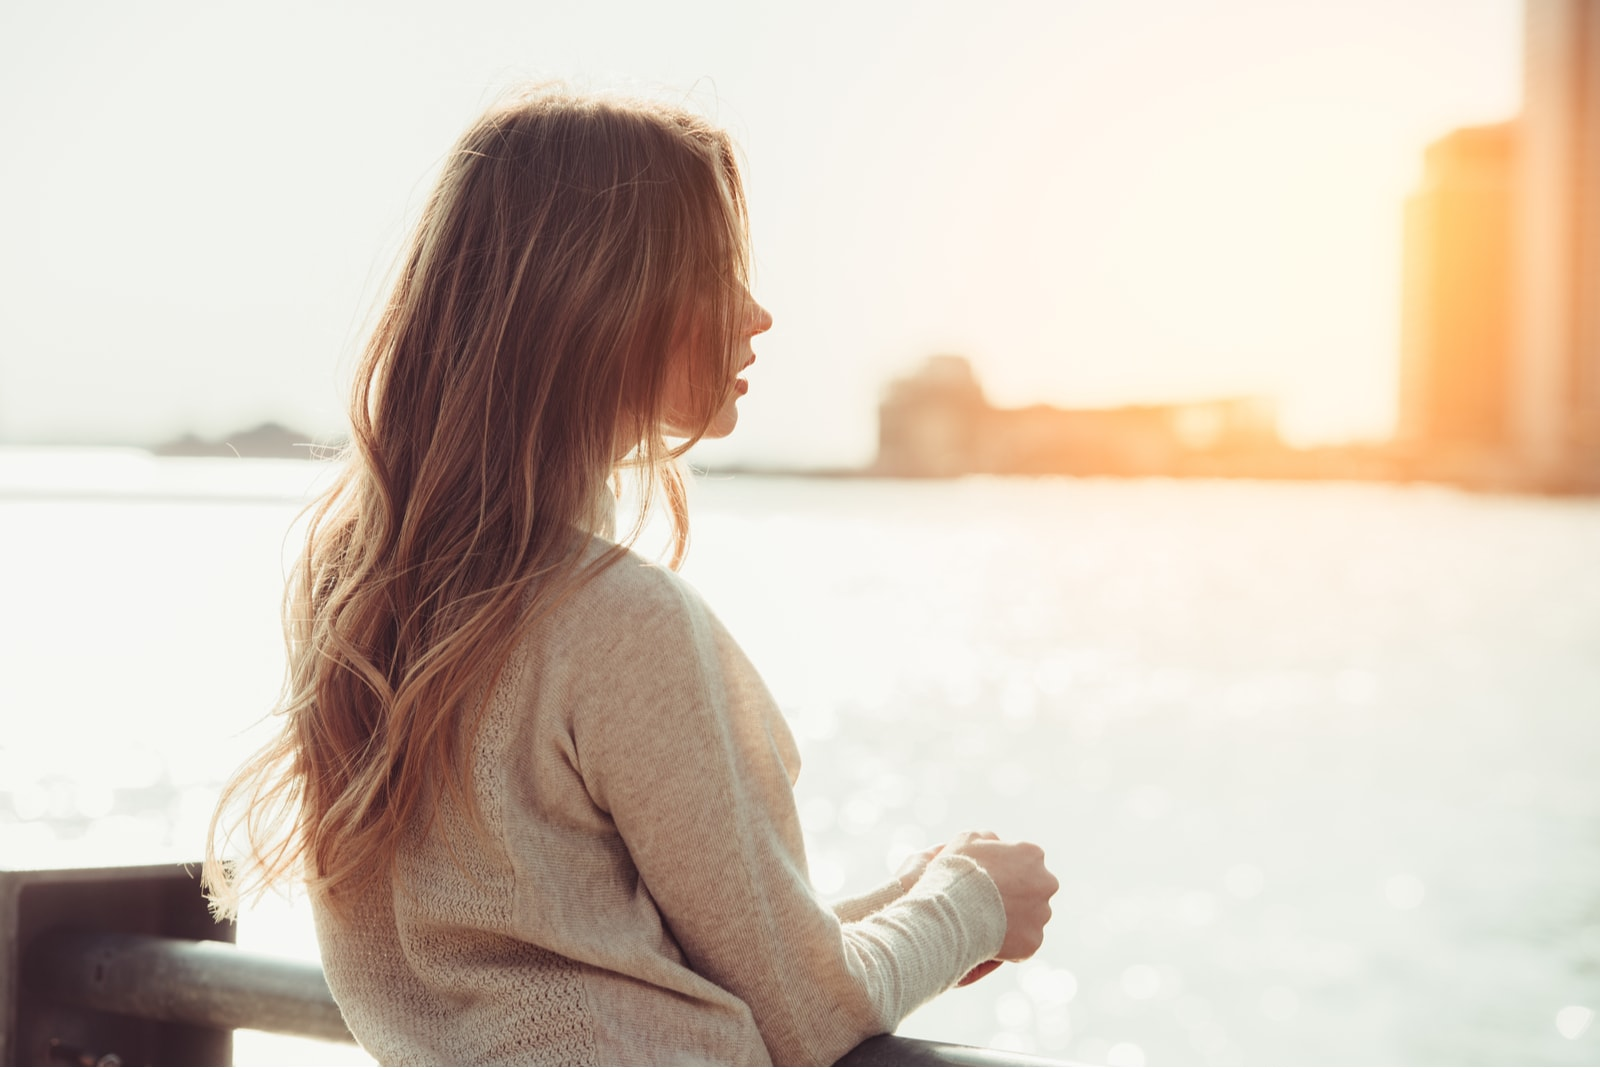 8 Lessons I Learned After I Got My Heart Broken